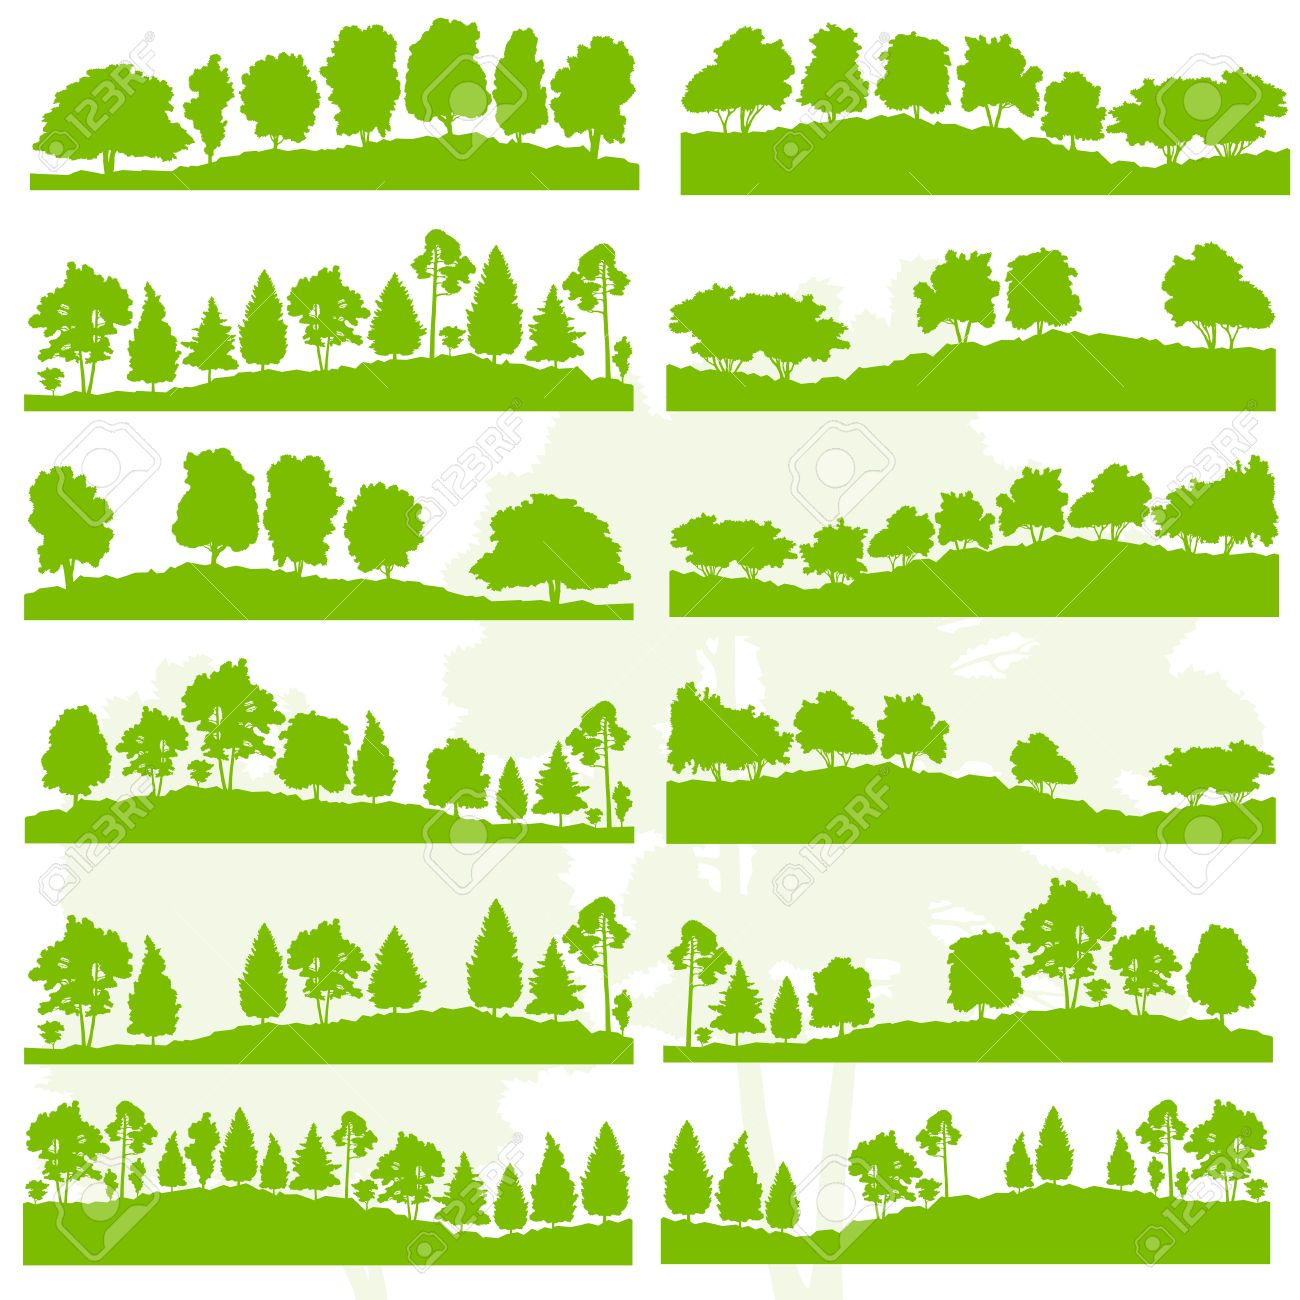 Forest trees and bushes wild nature silhouettes landscape illustration collection background vector set green ecology concept for poster - 43574158